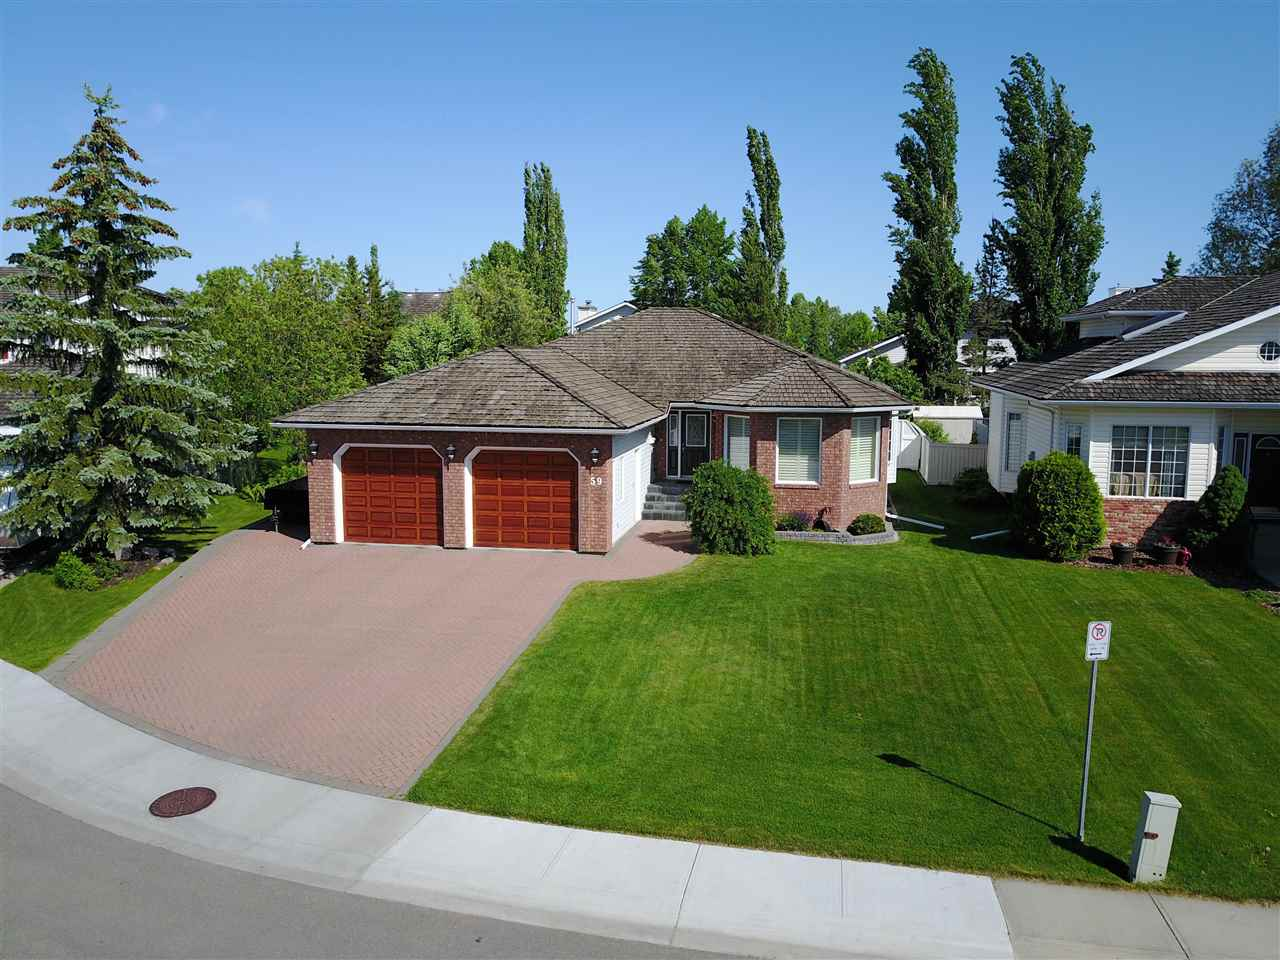 Photo 1: 59 NOTTINGHAM Estates: Sherwood Park House for sale : MLS(r) # E4061864